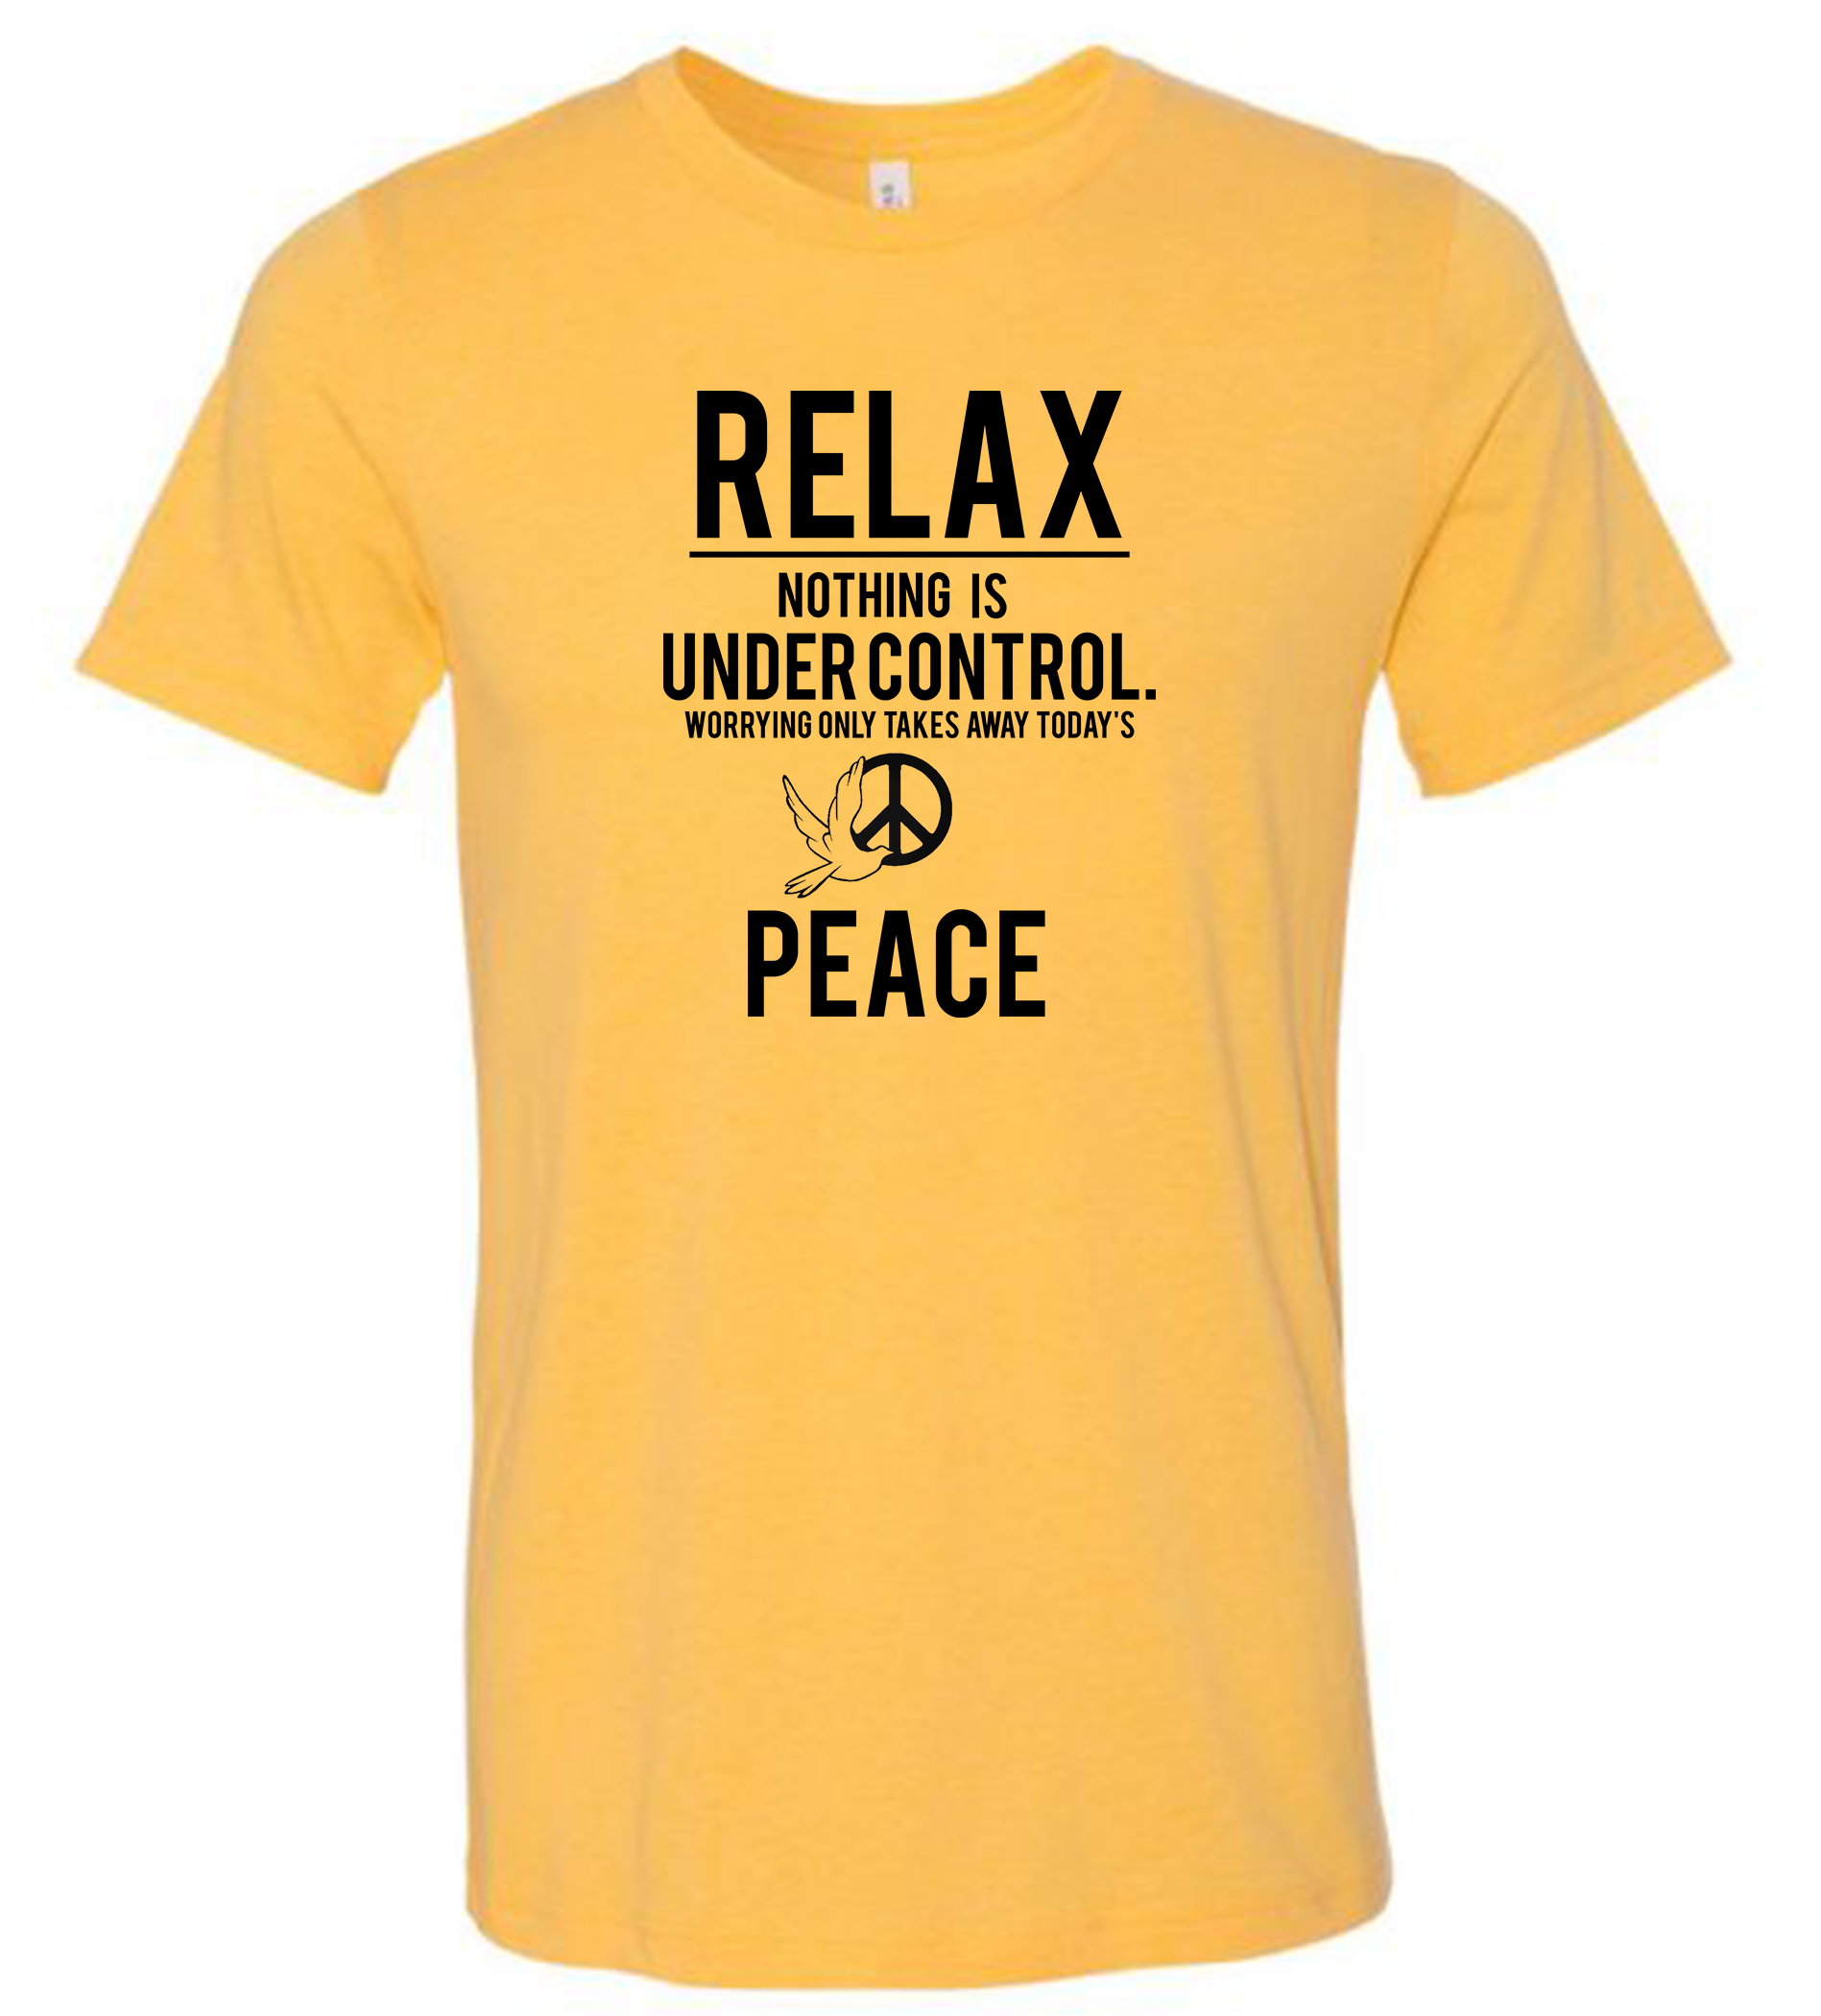 RELAX - NOTHING IS UNDER CONTROL